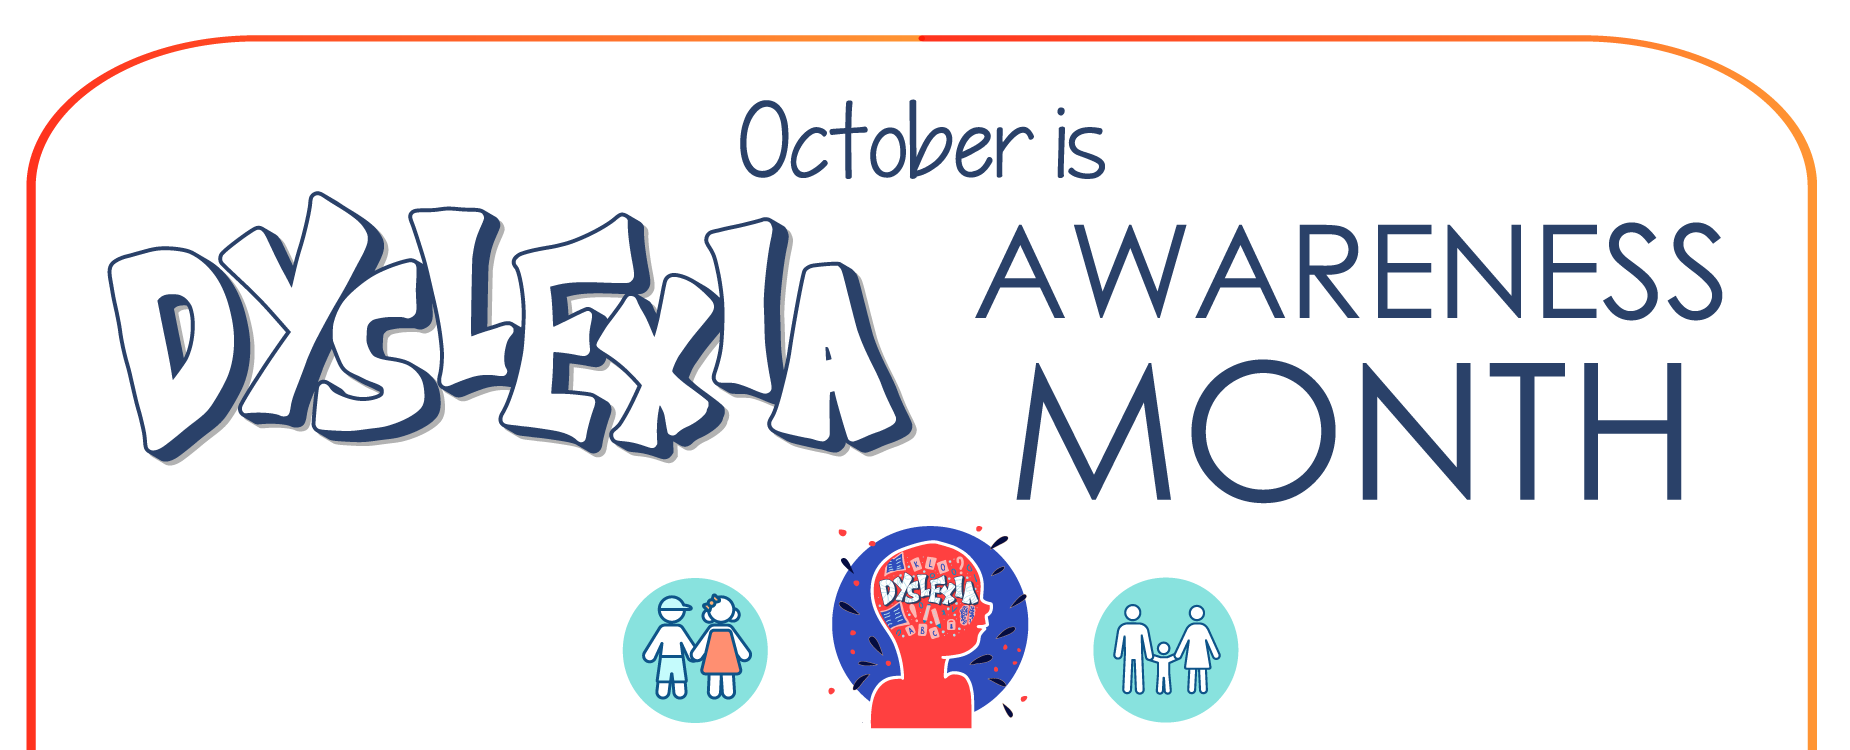 October is Dyslexia Awareness Month. Magnolia ISD hosts Dyslexia Night for Elementary families.